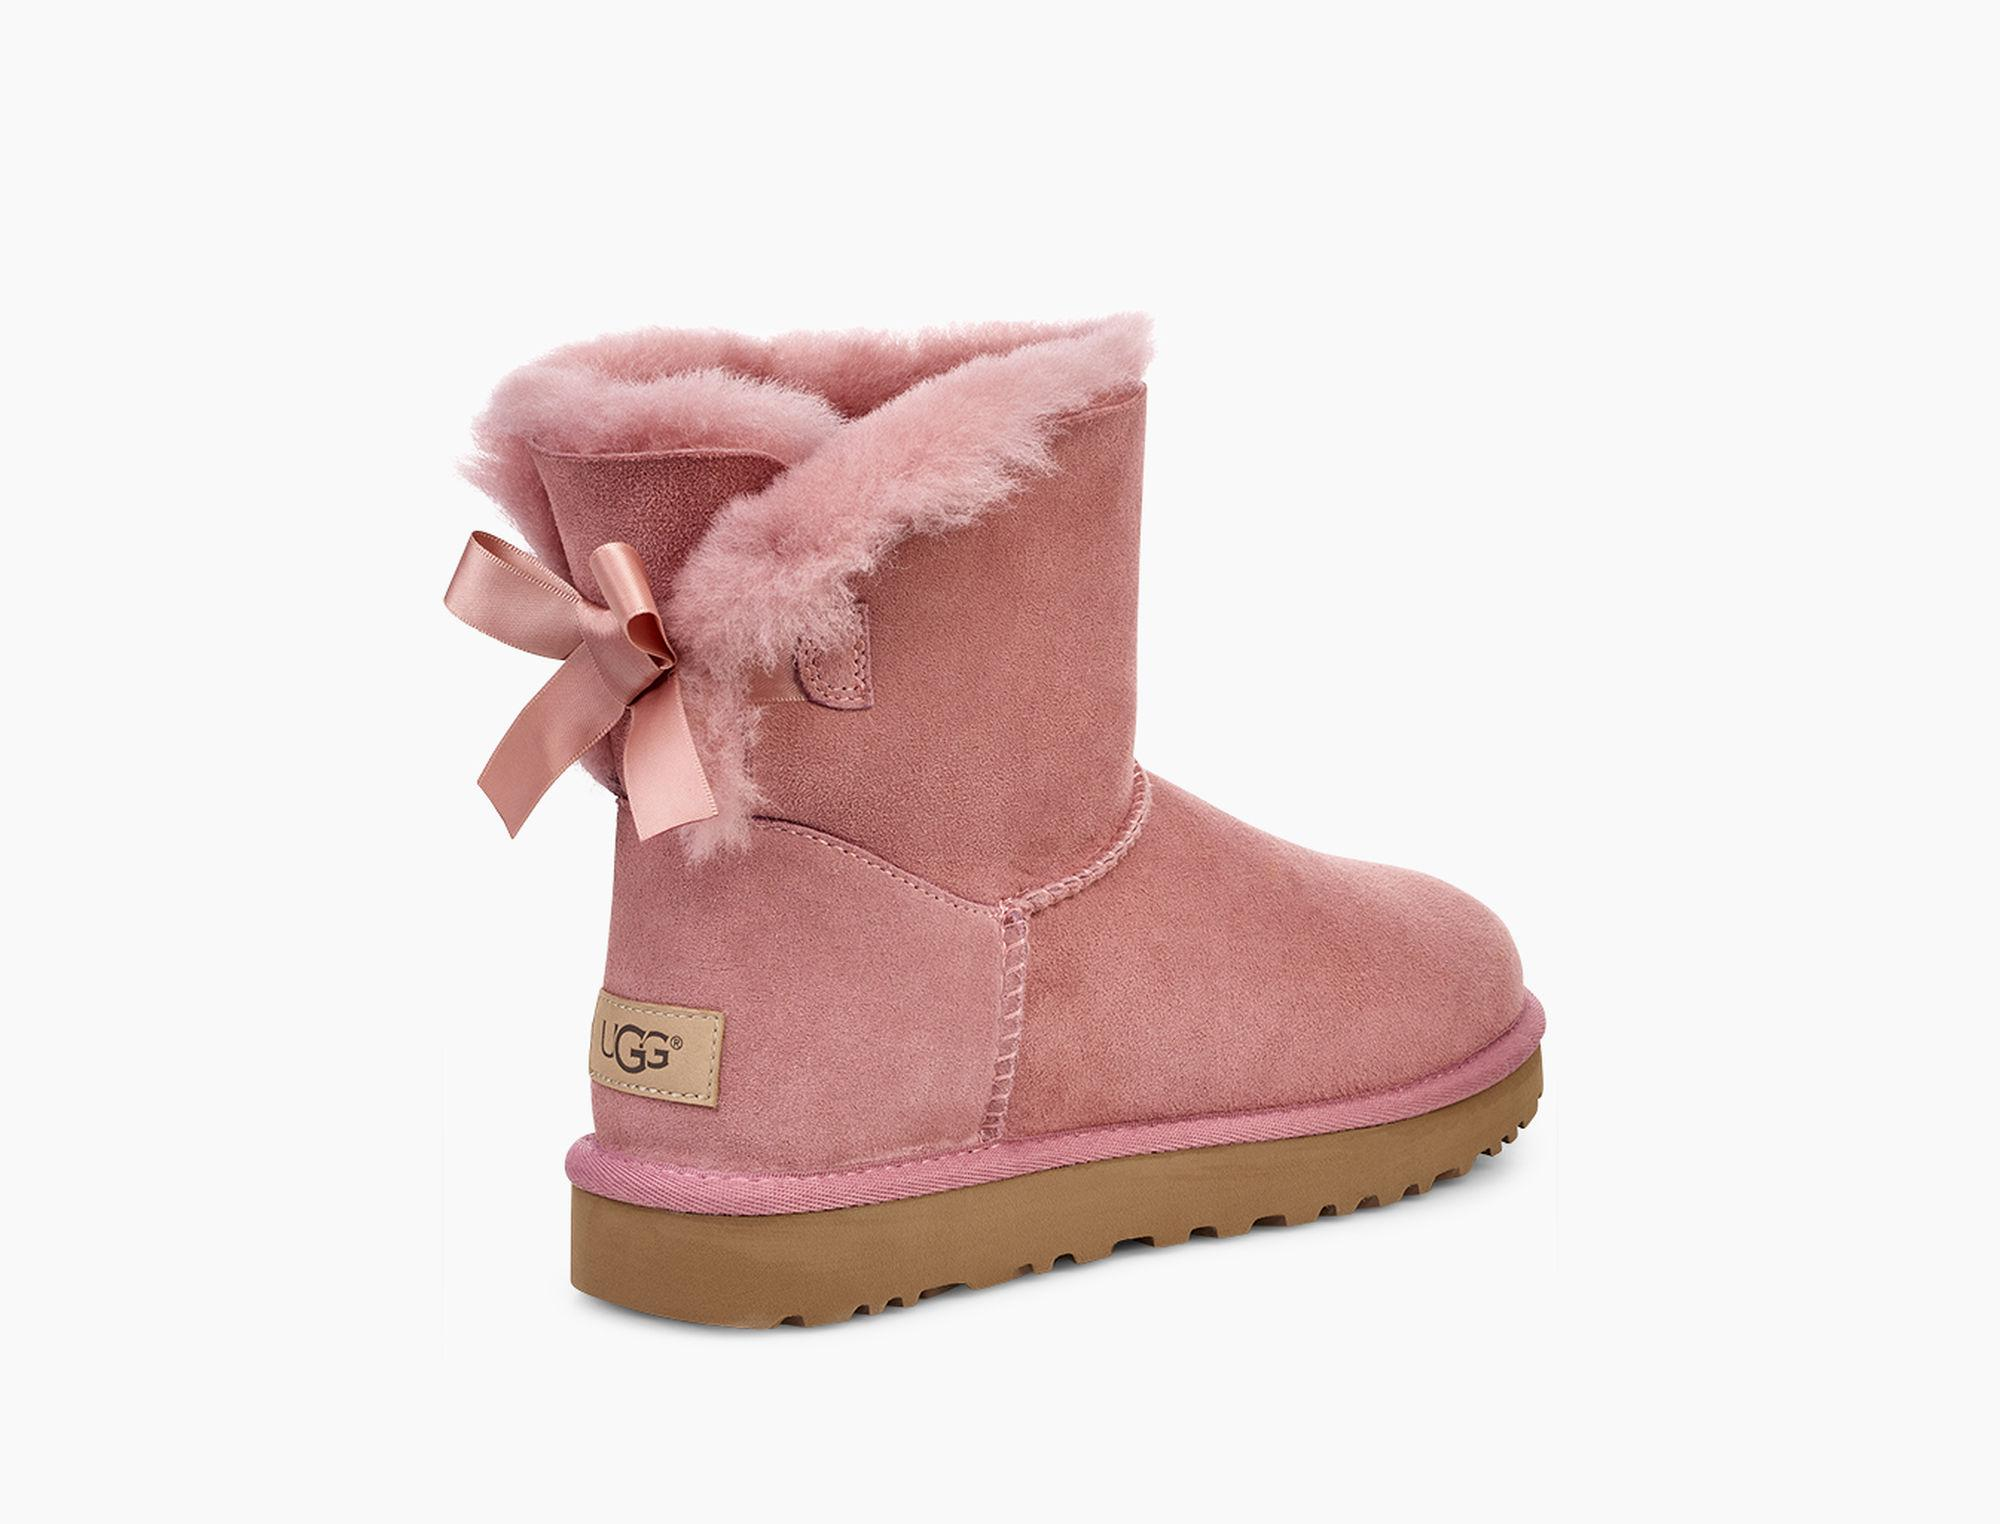 aab81520601 UGG Women's Mini Bailey Bow Ii Boot in Pink - Lyst